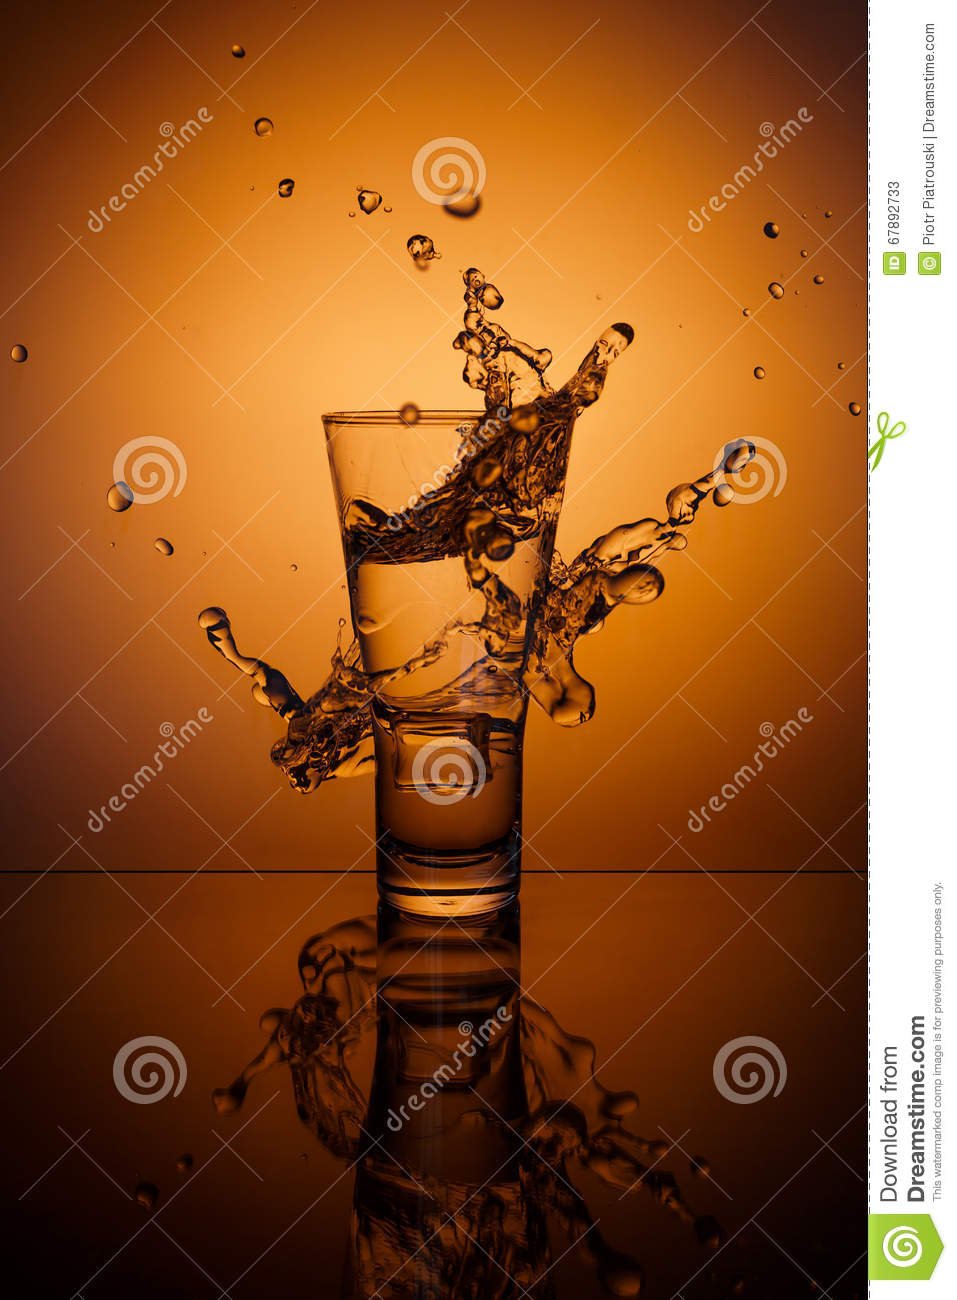 Ice cubes splashing into glass of water